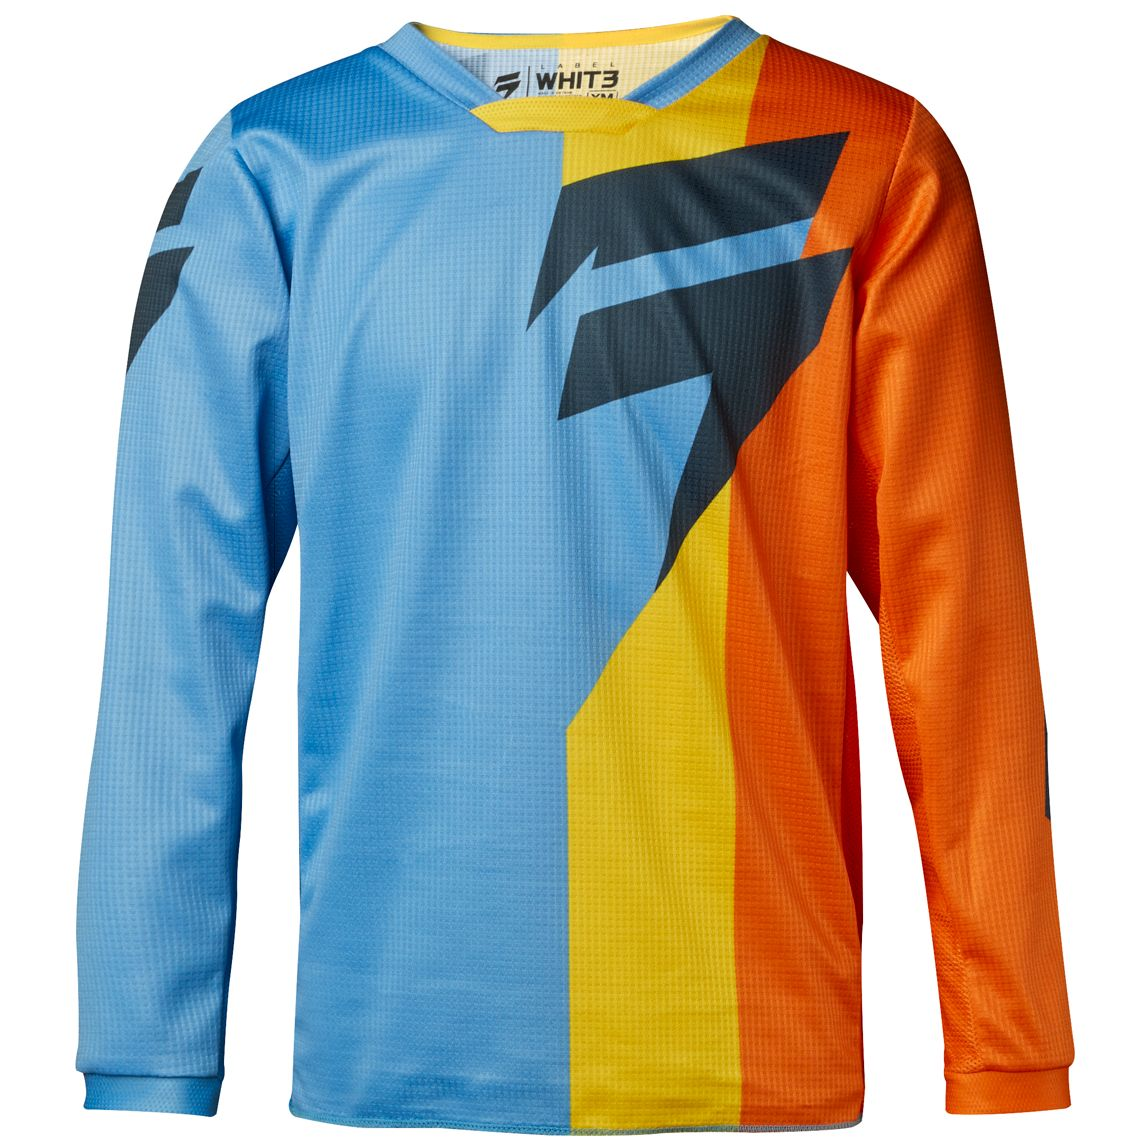 Maillot cross Shift YOUTH WHITE TARMAC - ORANGE BLEU - 2018